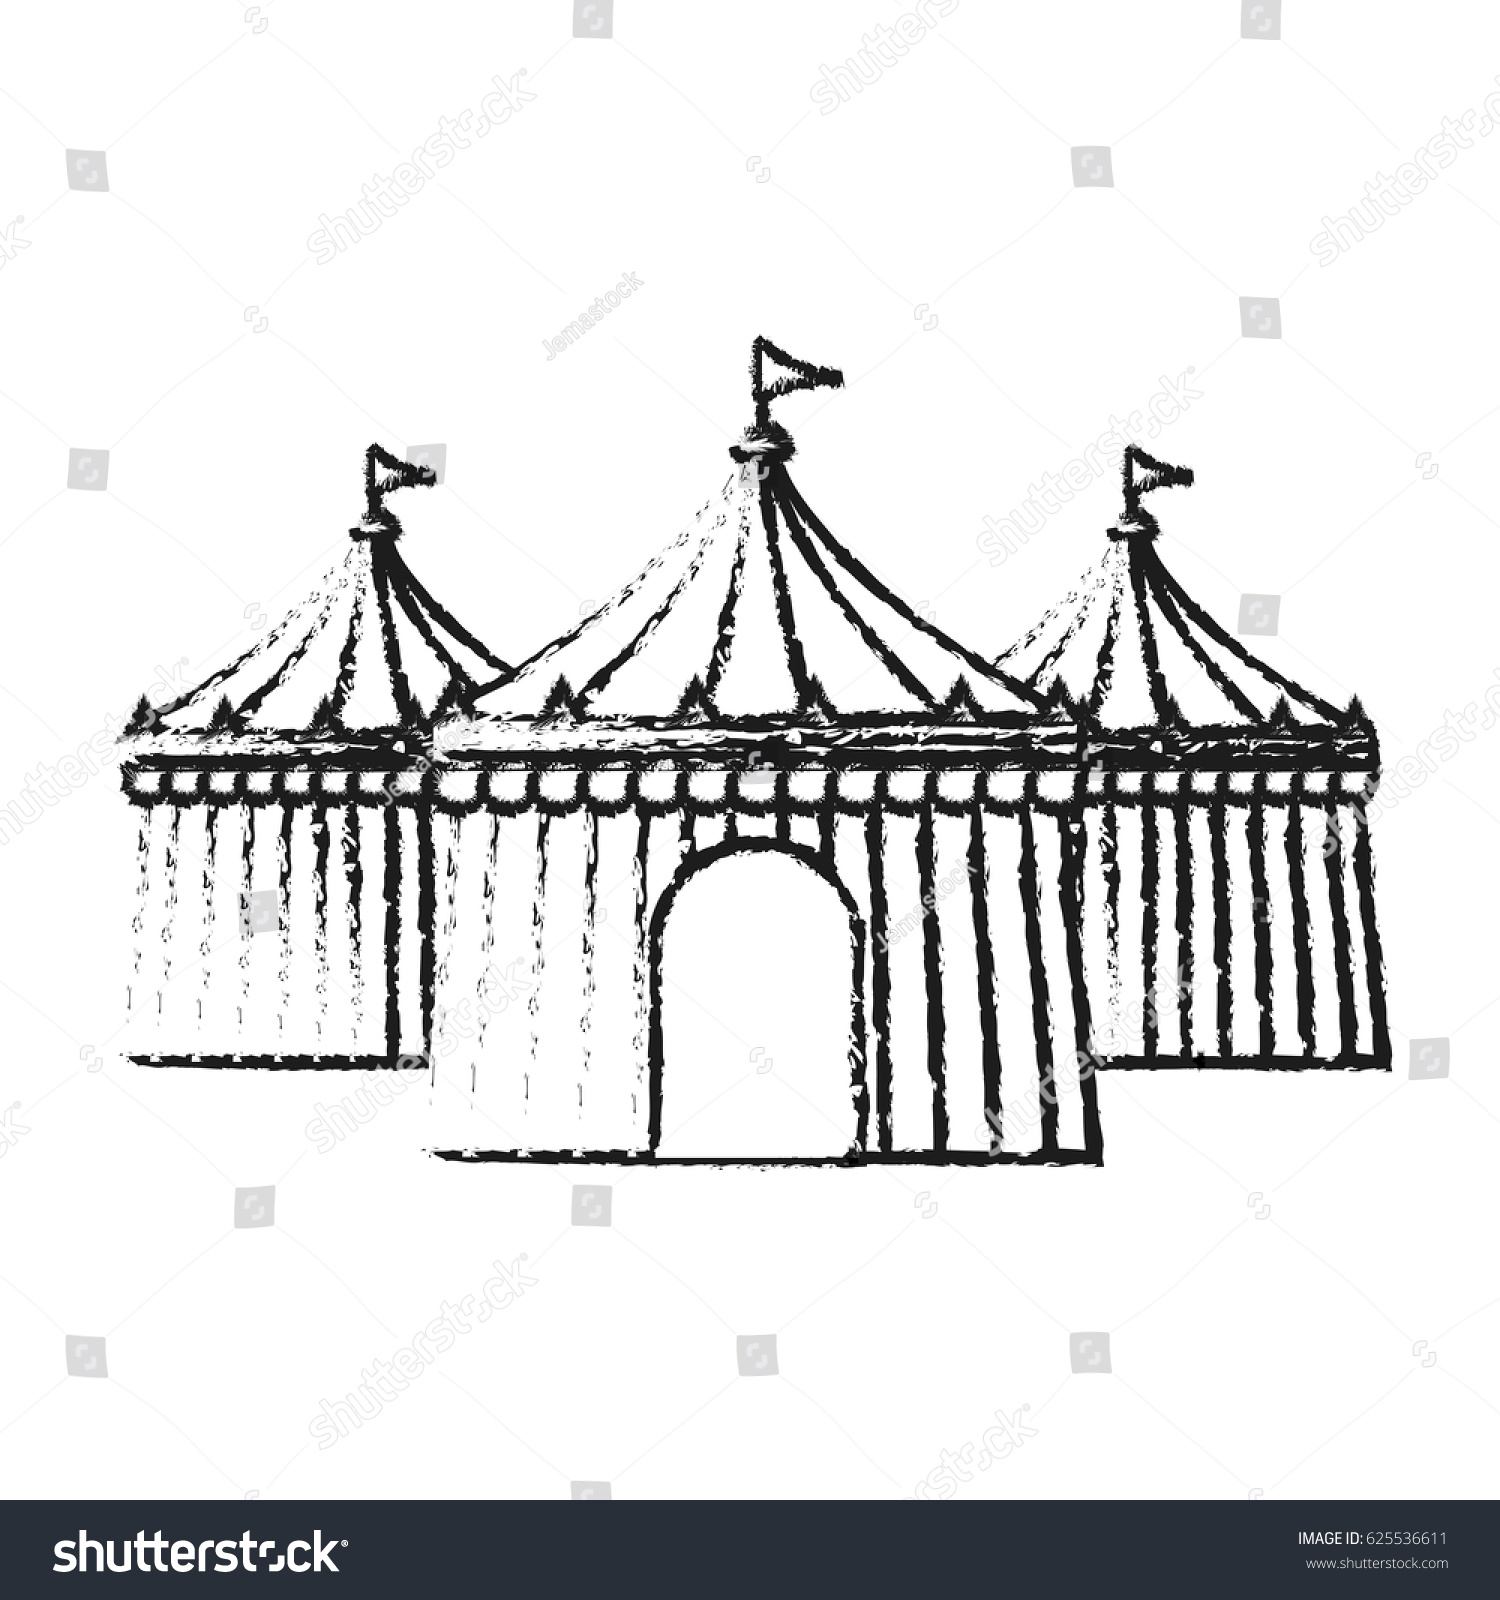 circus tent icon image  sc 1 st  Shutterstock & Circus Tent Icon Image Stock Vector 625536611 - Shutterstock